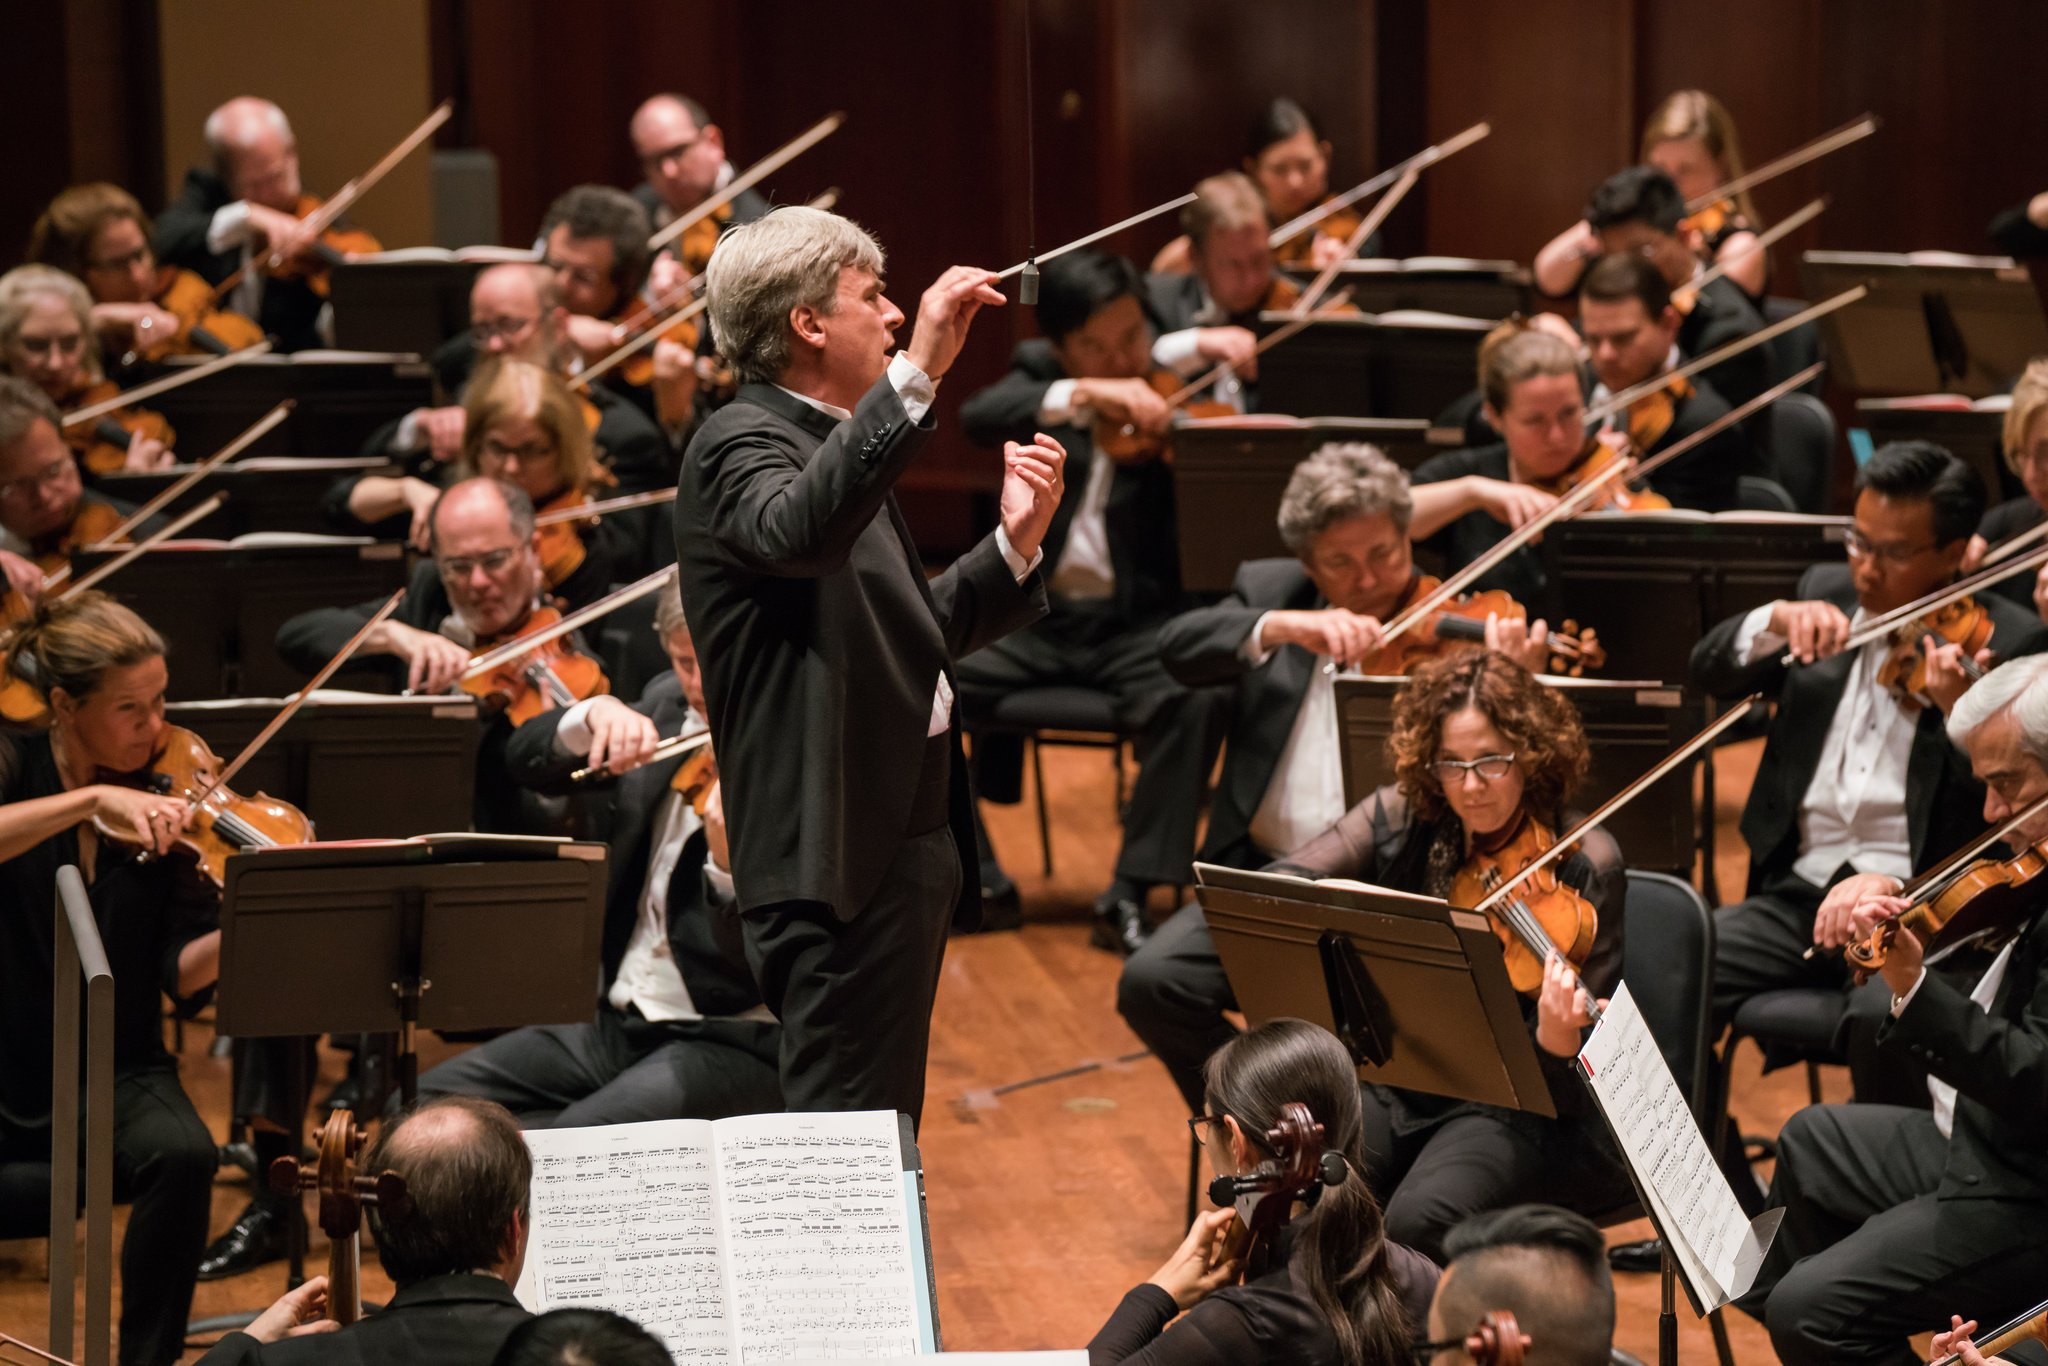 Thomas Dausgaard conducting the Seattle Symphony Orchestra. He has been chosen as its new music director. Credit: Seattle Symphony Orchestra